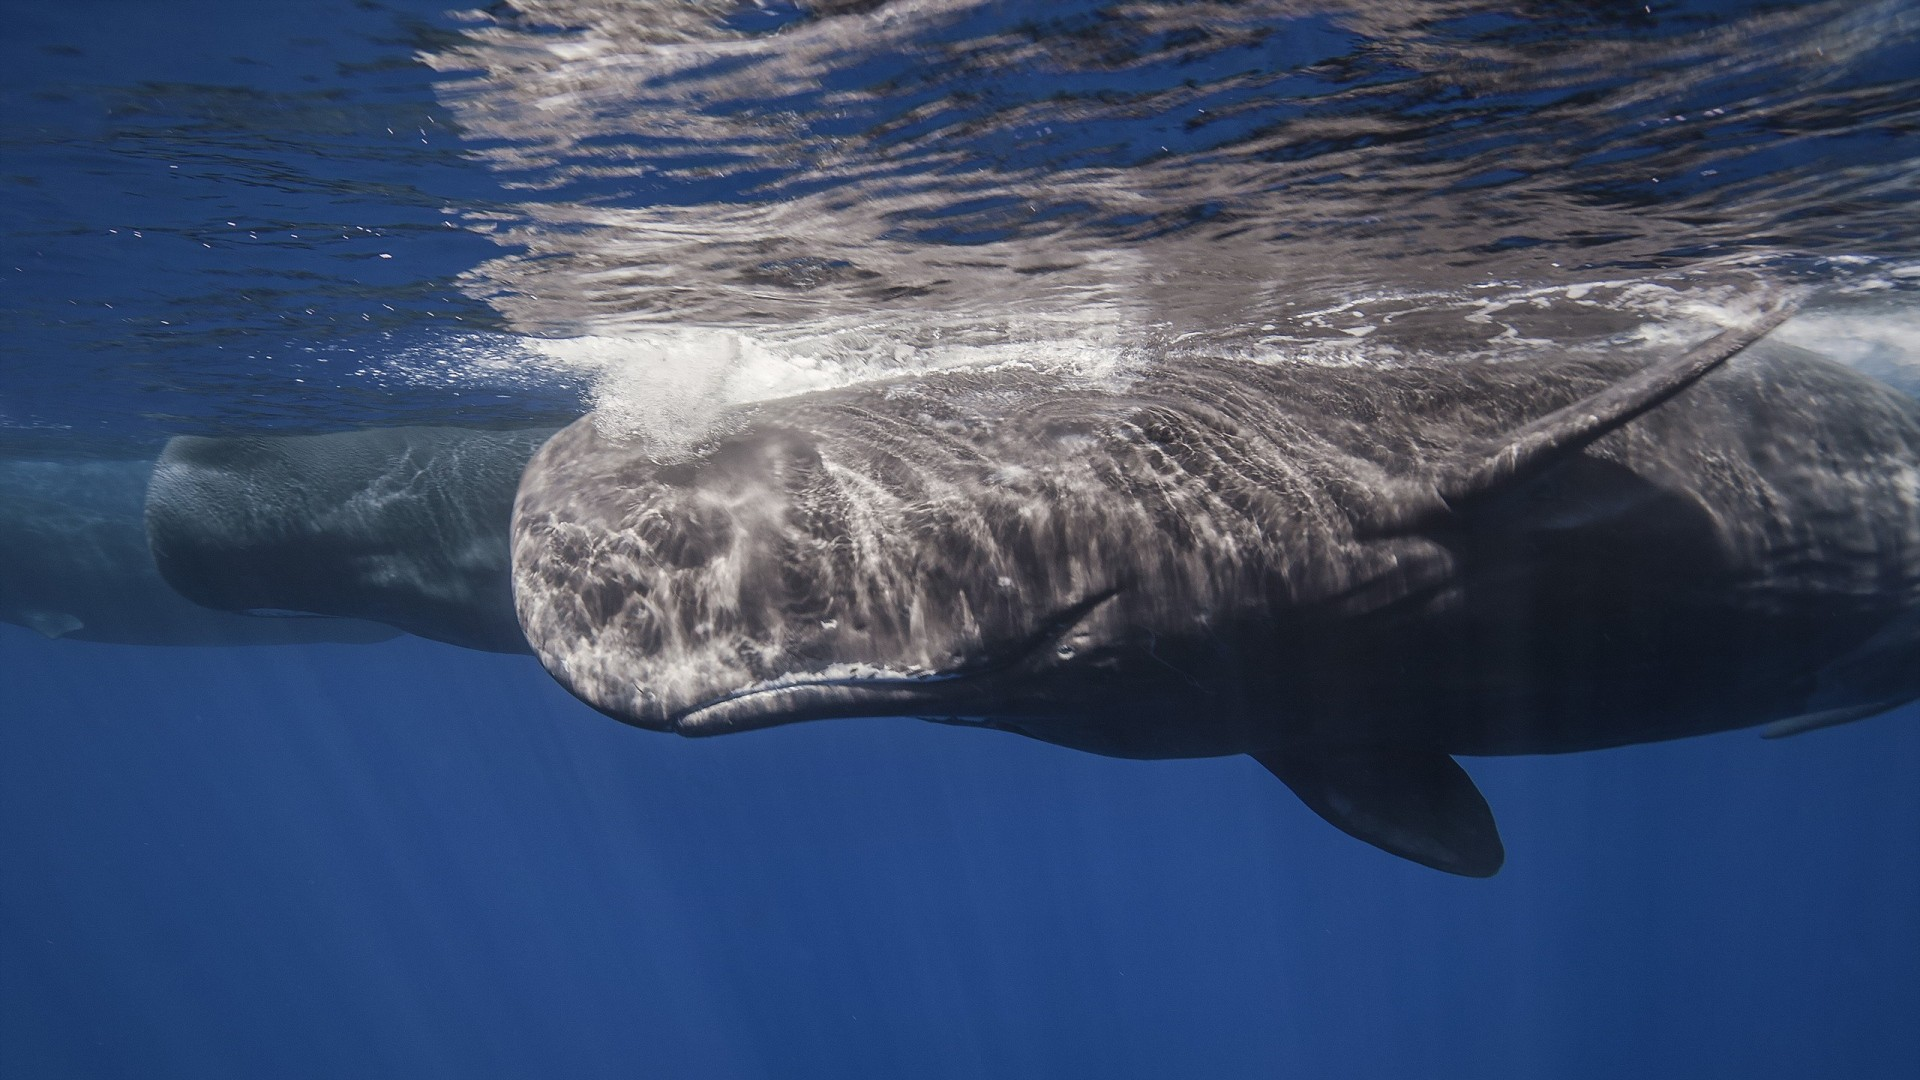 1920x1080 Preview wallpaper whale, sperm whale, sea, ocean, underwater